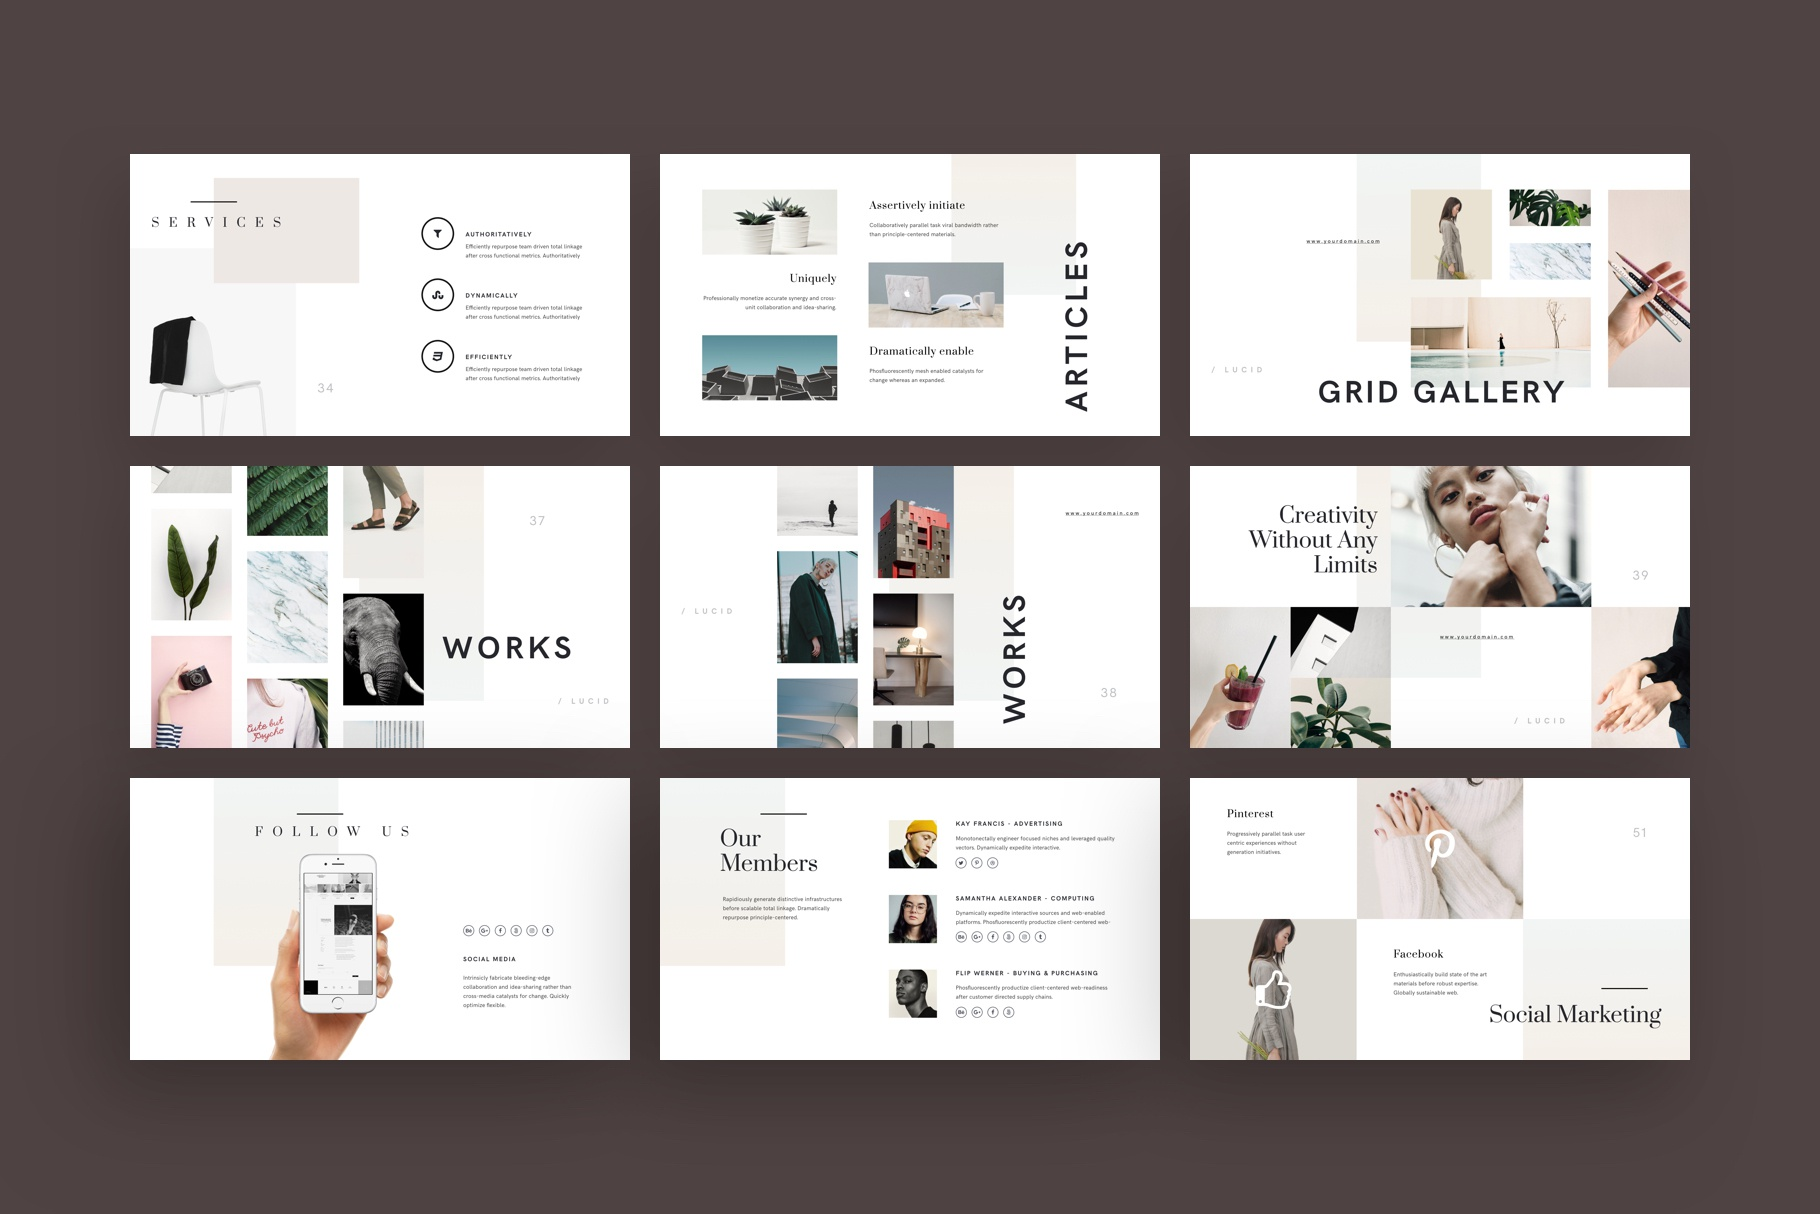 Lucid keynote presentation template by goashape 5